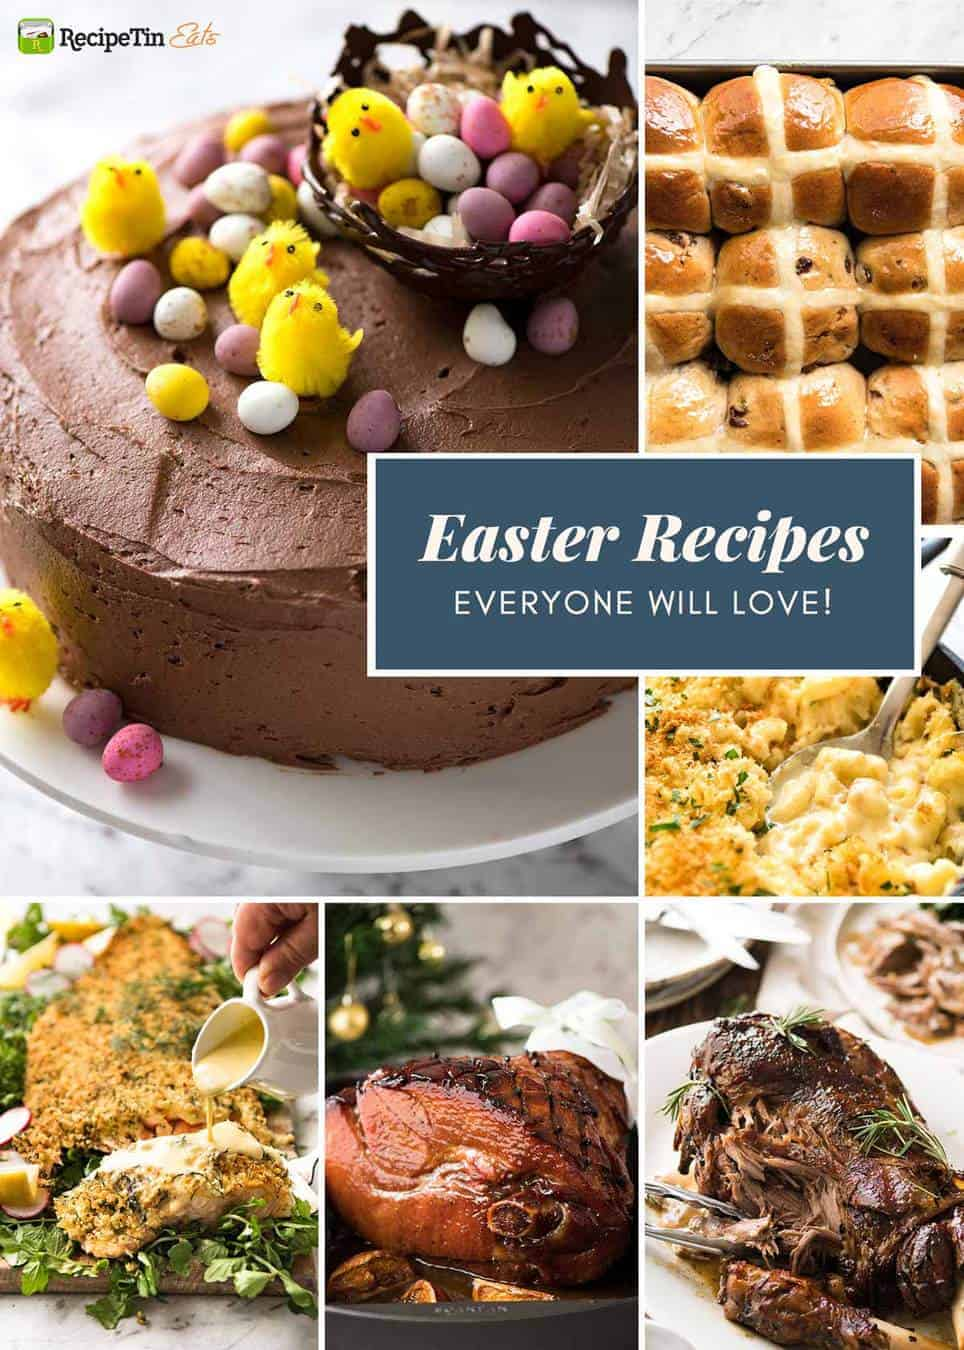 What to make for Easter - Easter Recipes 2018